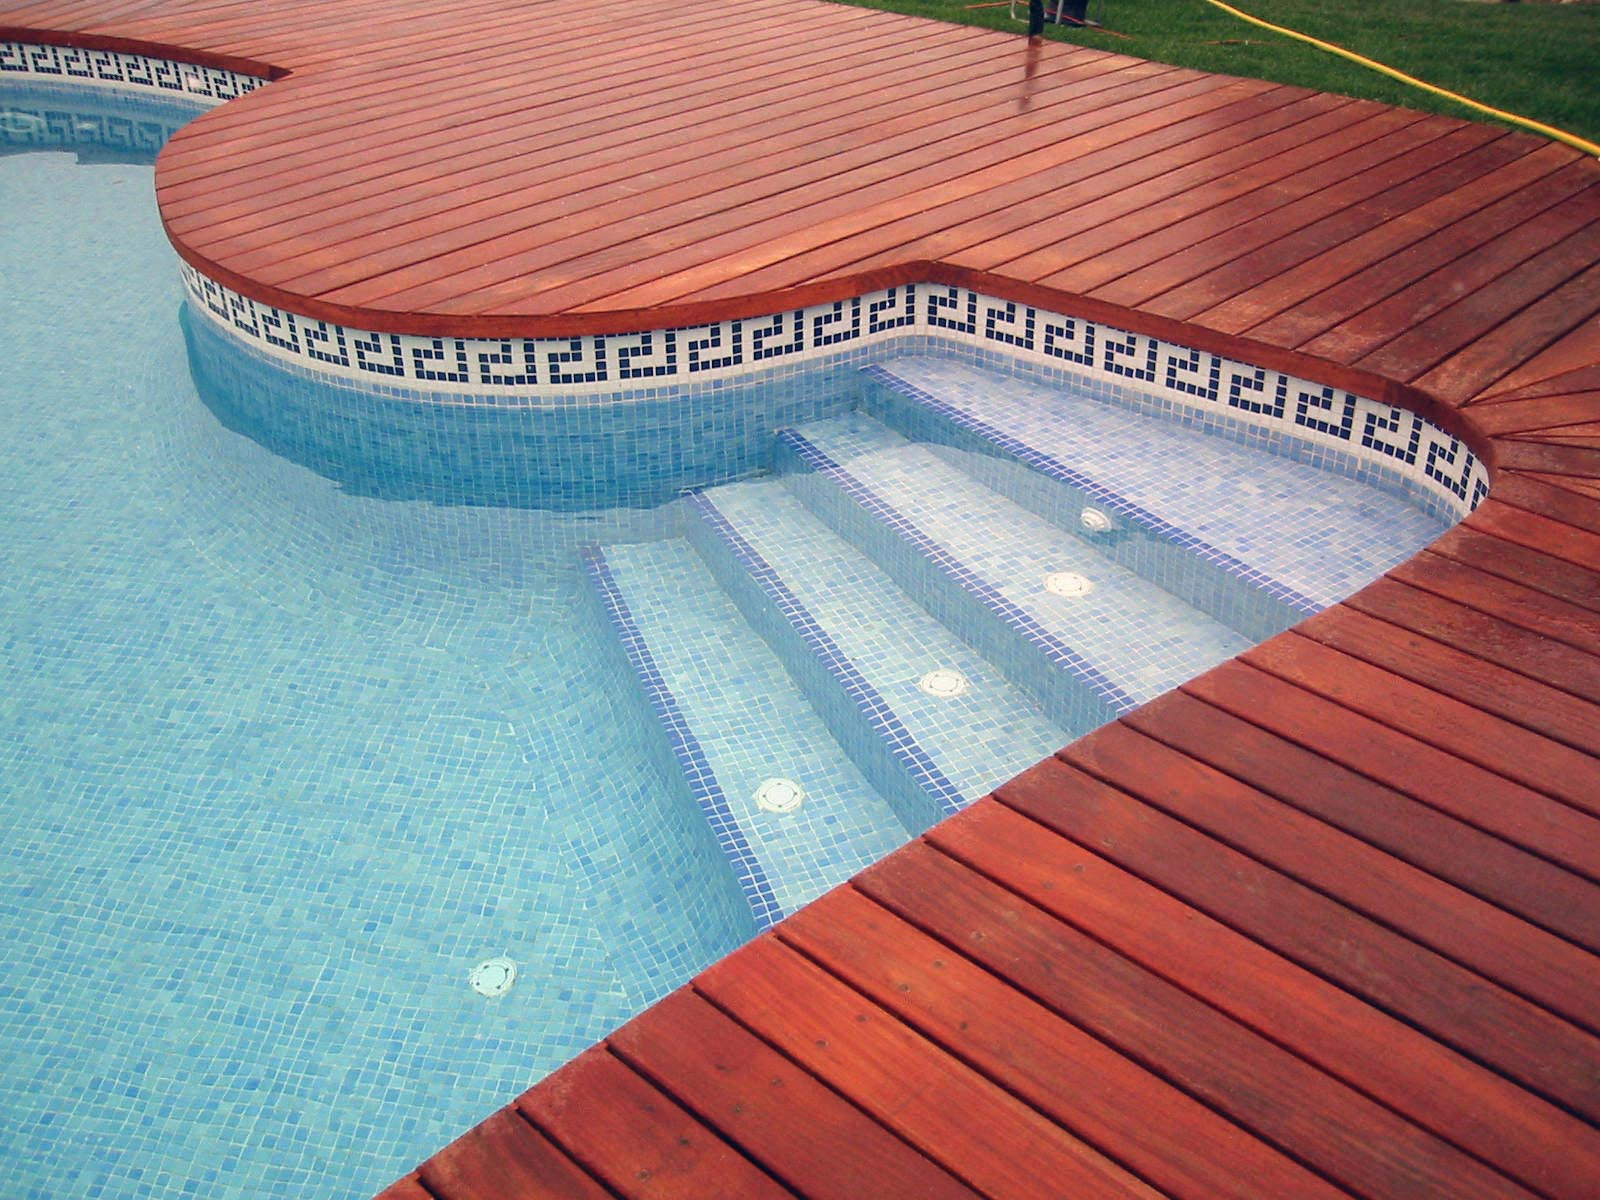 Tile for swimming pool backyard design ideas for Pool design tiles